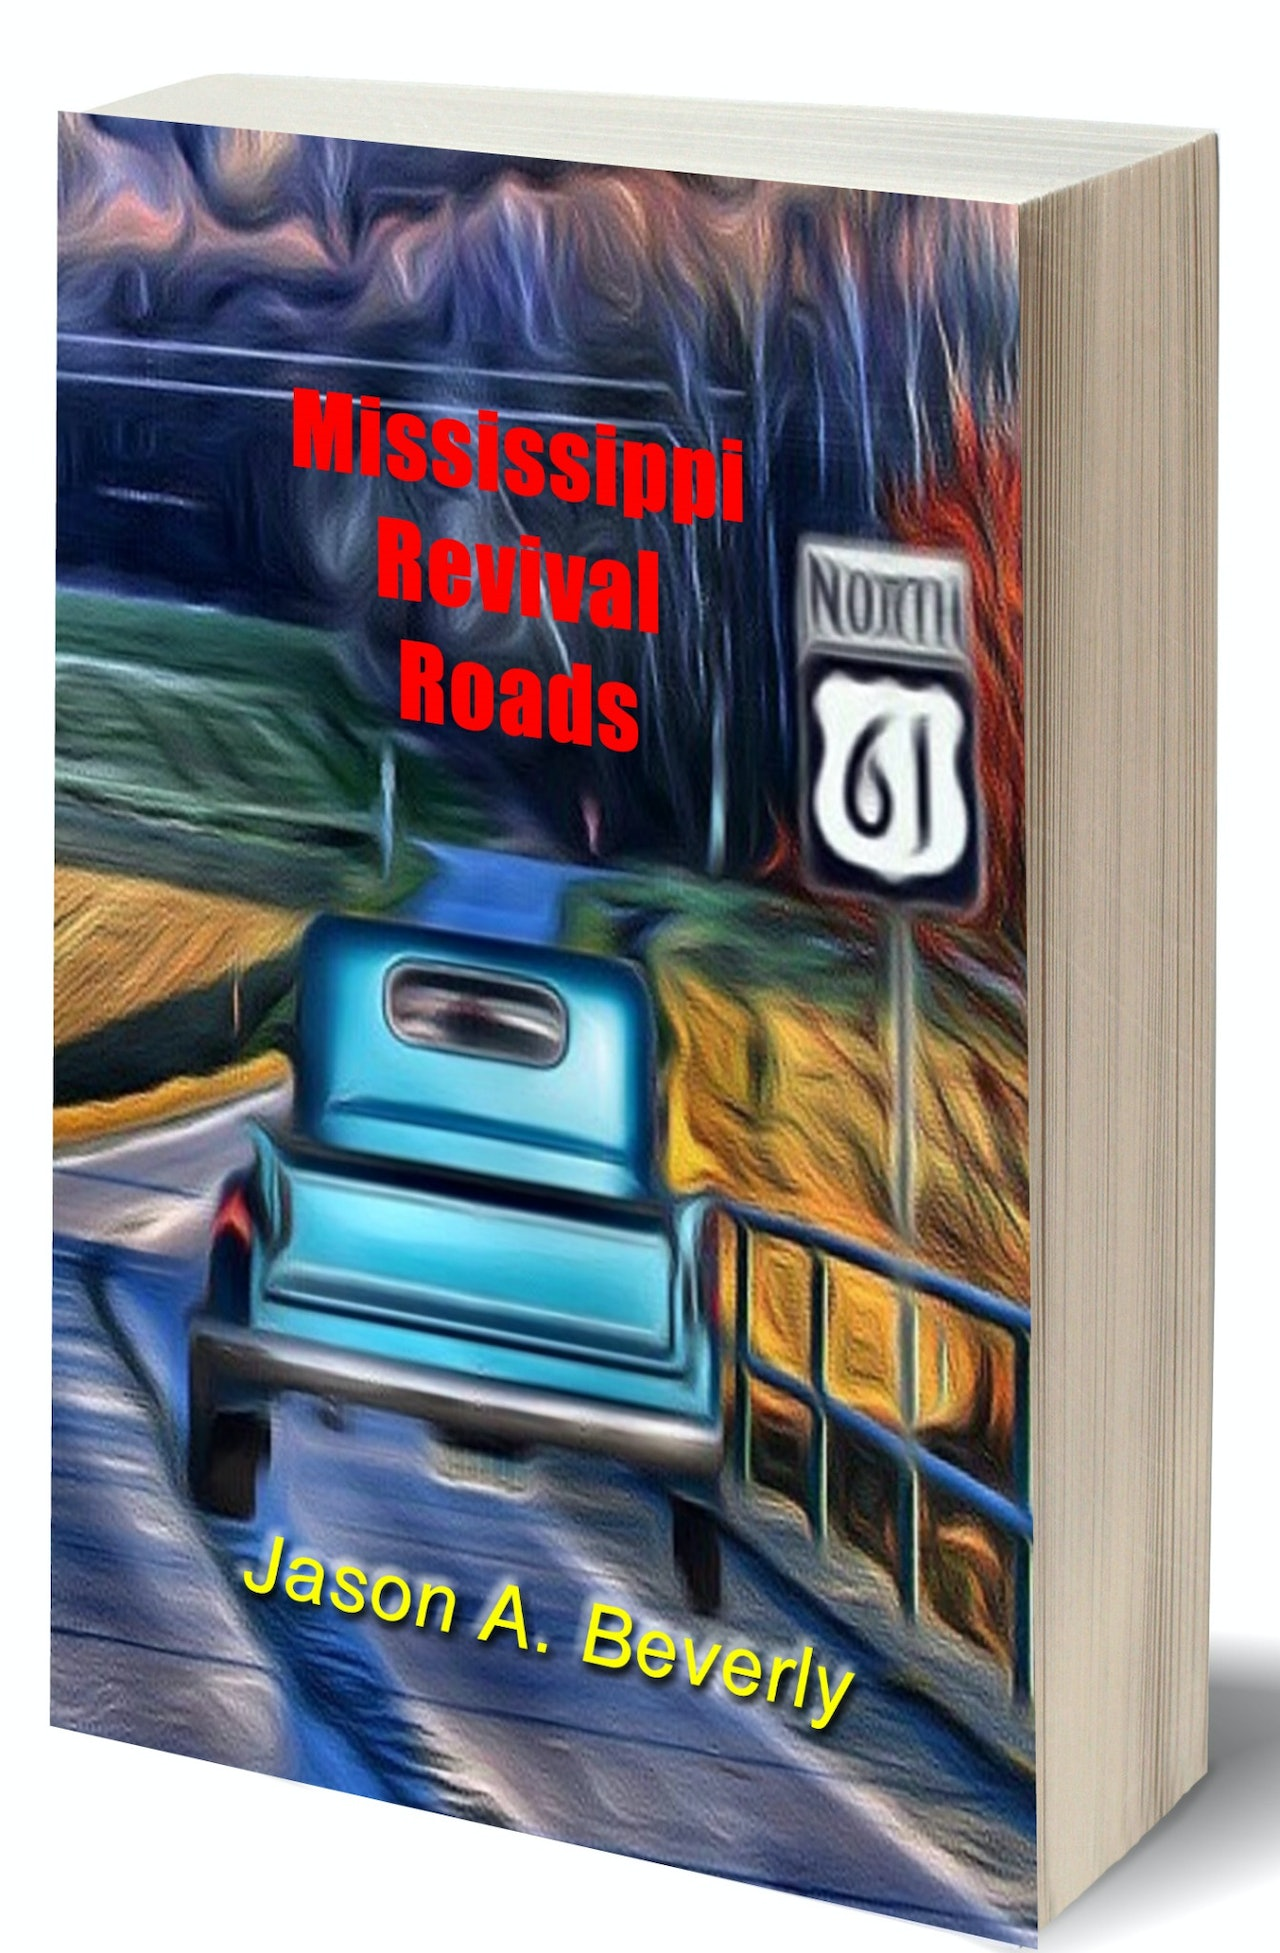 Paperback: Mississippi Revival Roads